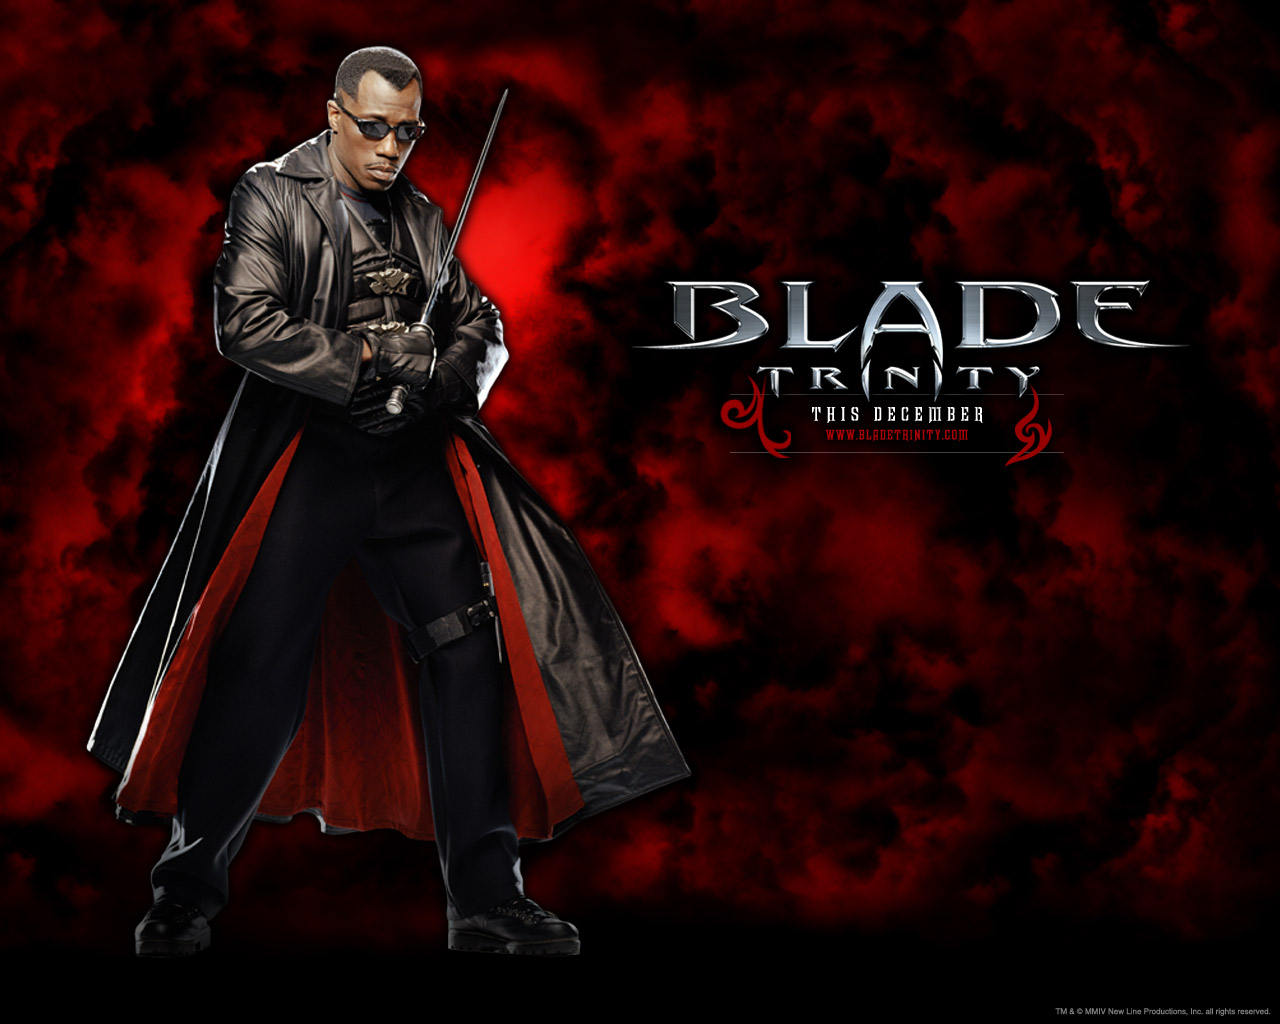 Blade Movie Wallpapers HD wallpapers   Blade Movie Wallpapers 1280x1024